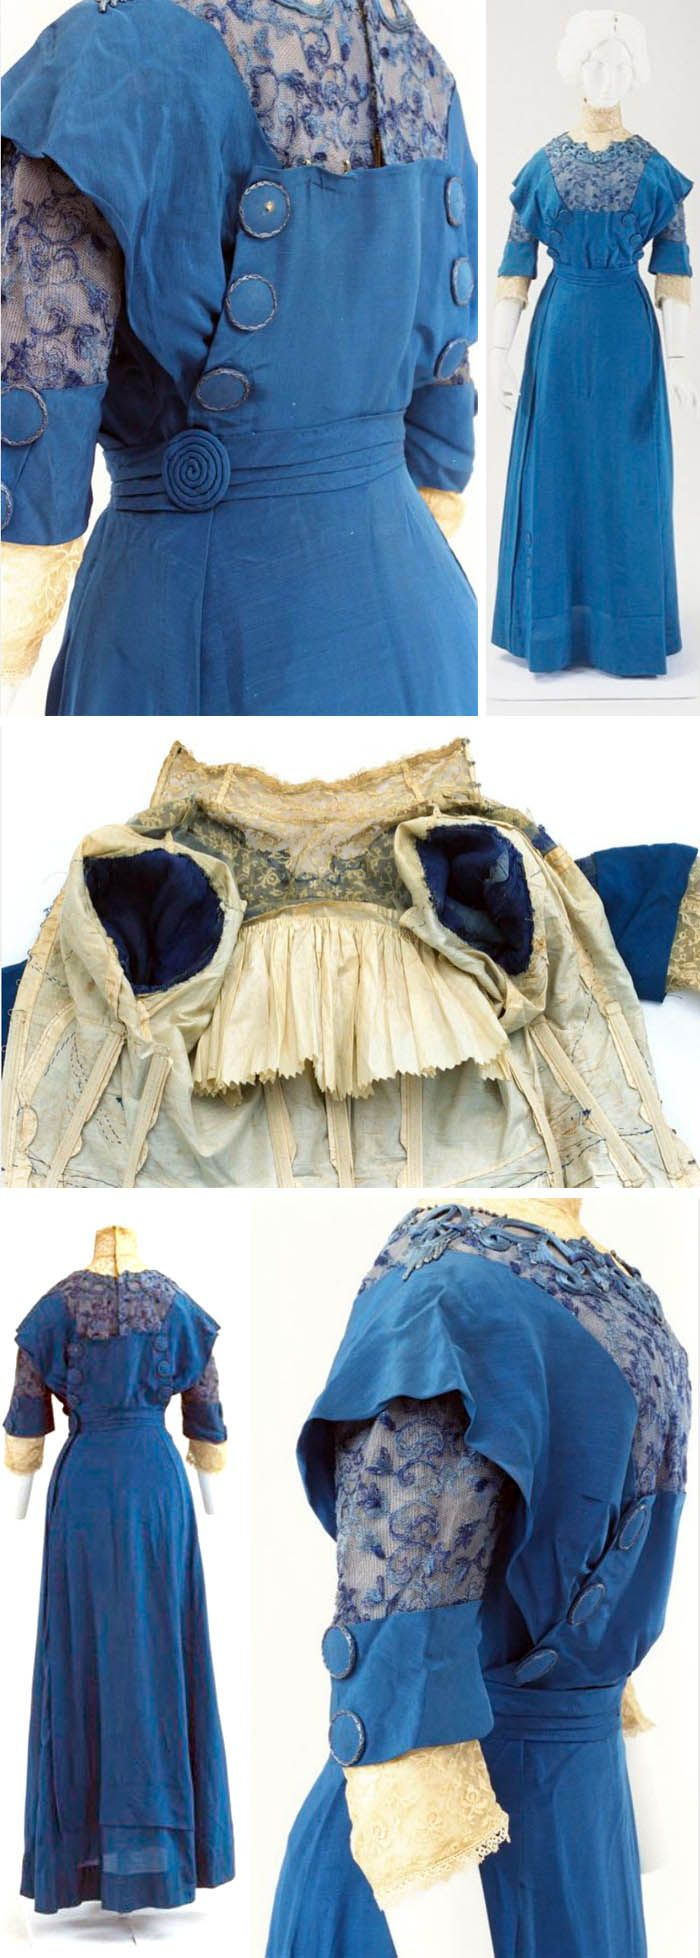 Early 1910s Day dress, European. Racing blue silk with ecru lace, embroidery, and large decorative walnut buttons. Via Bunka Gakuen Costume Museum.